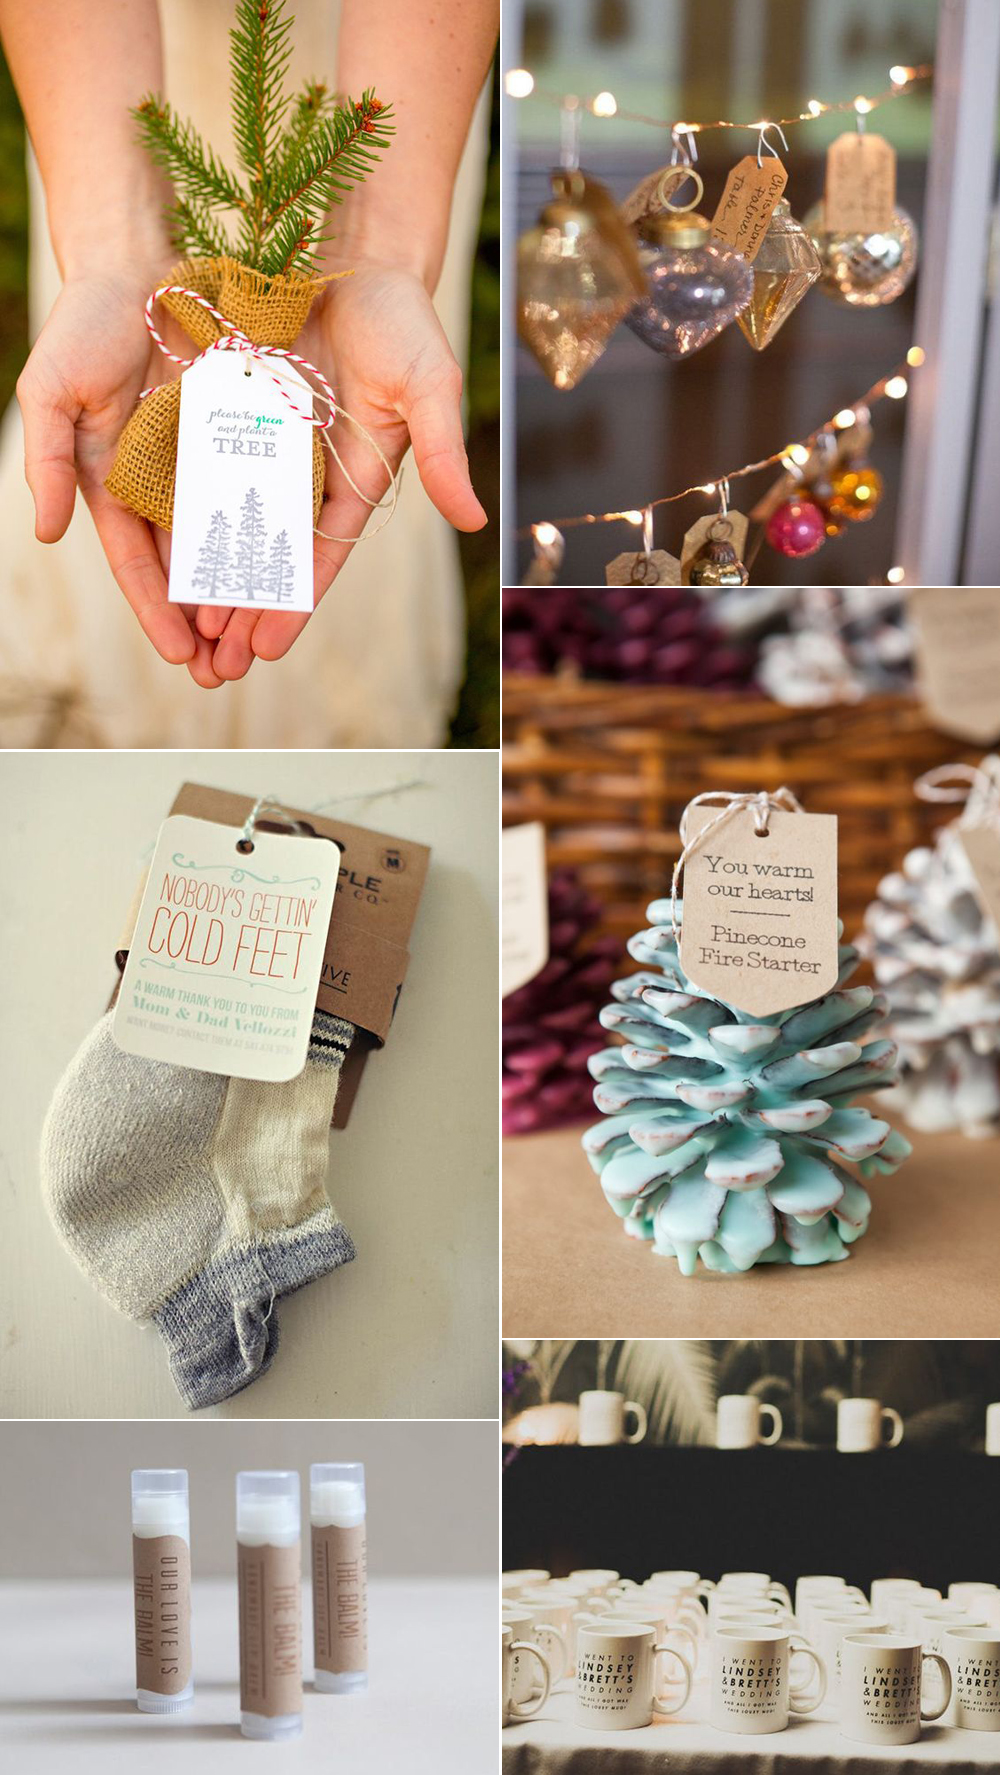 {Image sources: Pine tree featured on  Style Me Pretty  - photo by  Amanda Hein Photography ; Christmas ornaments featured on  Want That Wedding ; Socks featured on  Brit + Co ; Pinecone fire starter featured on  Something Turqoise ; Chapstick featured on  Something Turqoise ; Mugs featured on  Ruffled  }